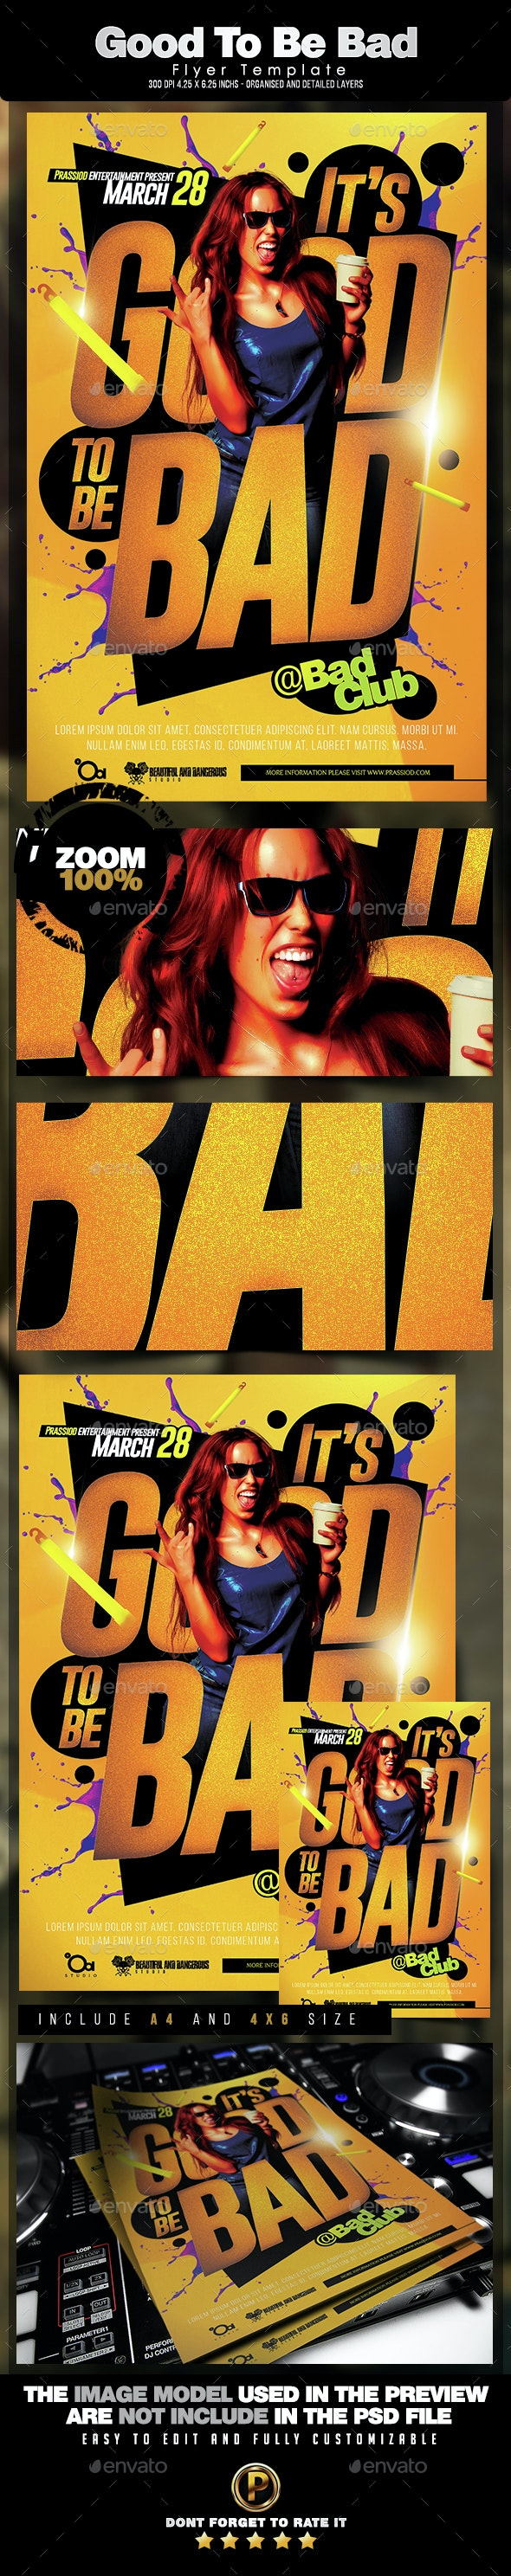 Good To Be Bad Flyer Template - Clubs & Parties Events